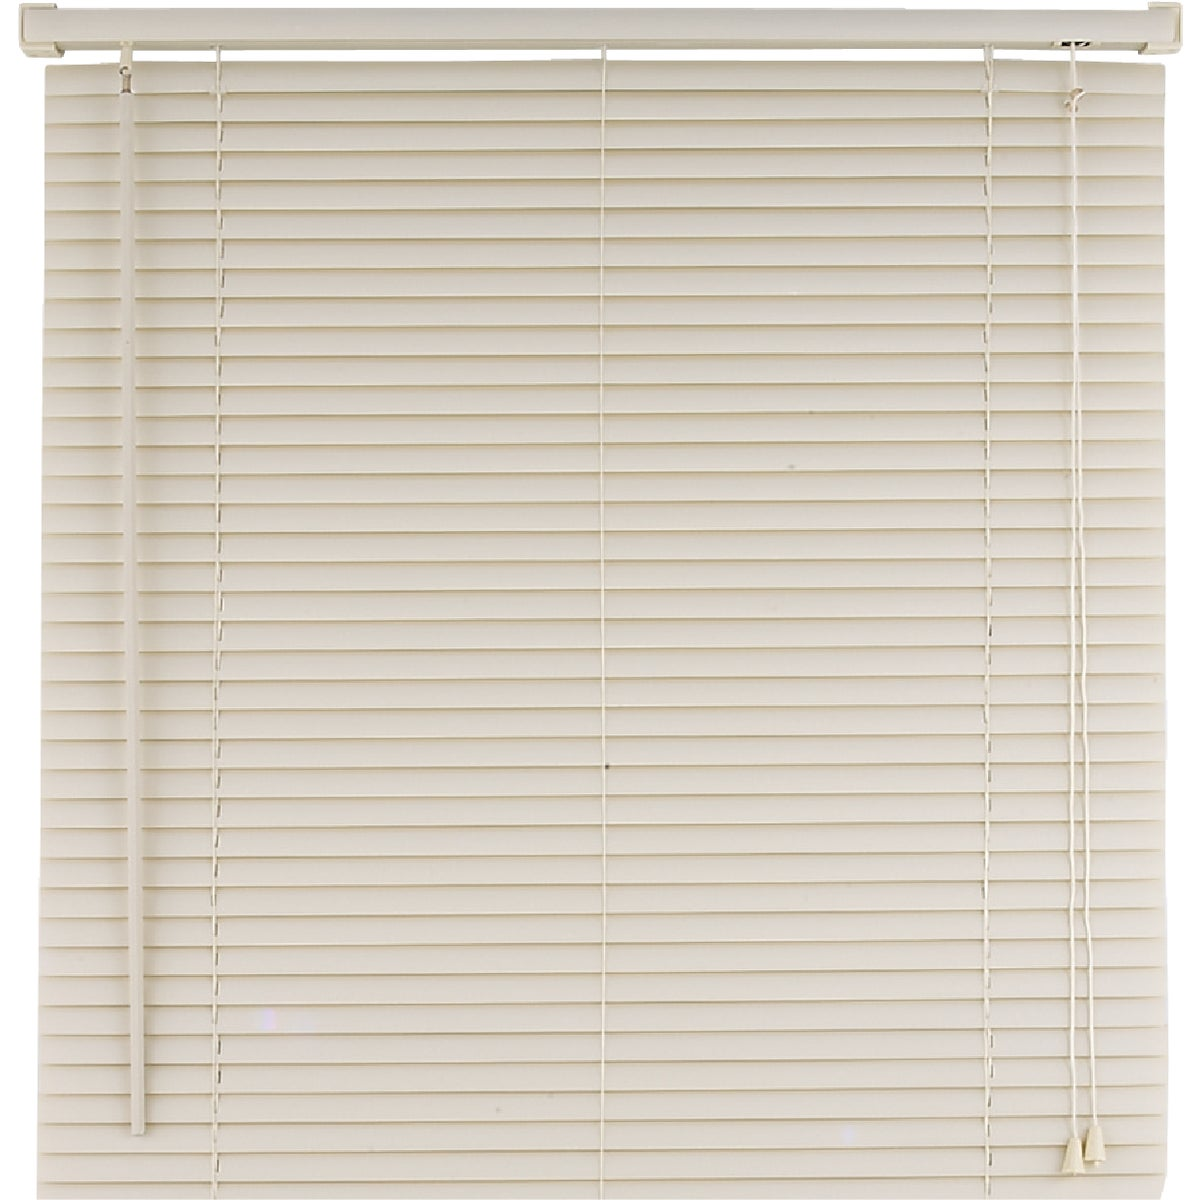 47X64 ALABASTER BLIND - 4764AL by Lotus Wind Incom